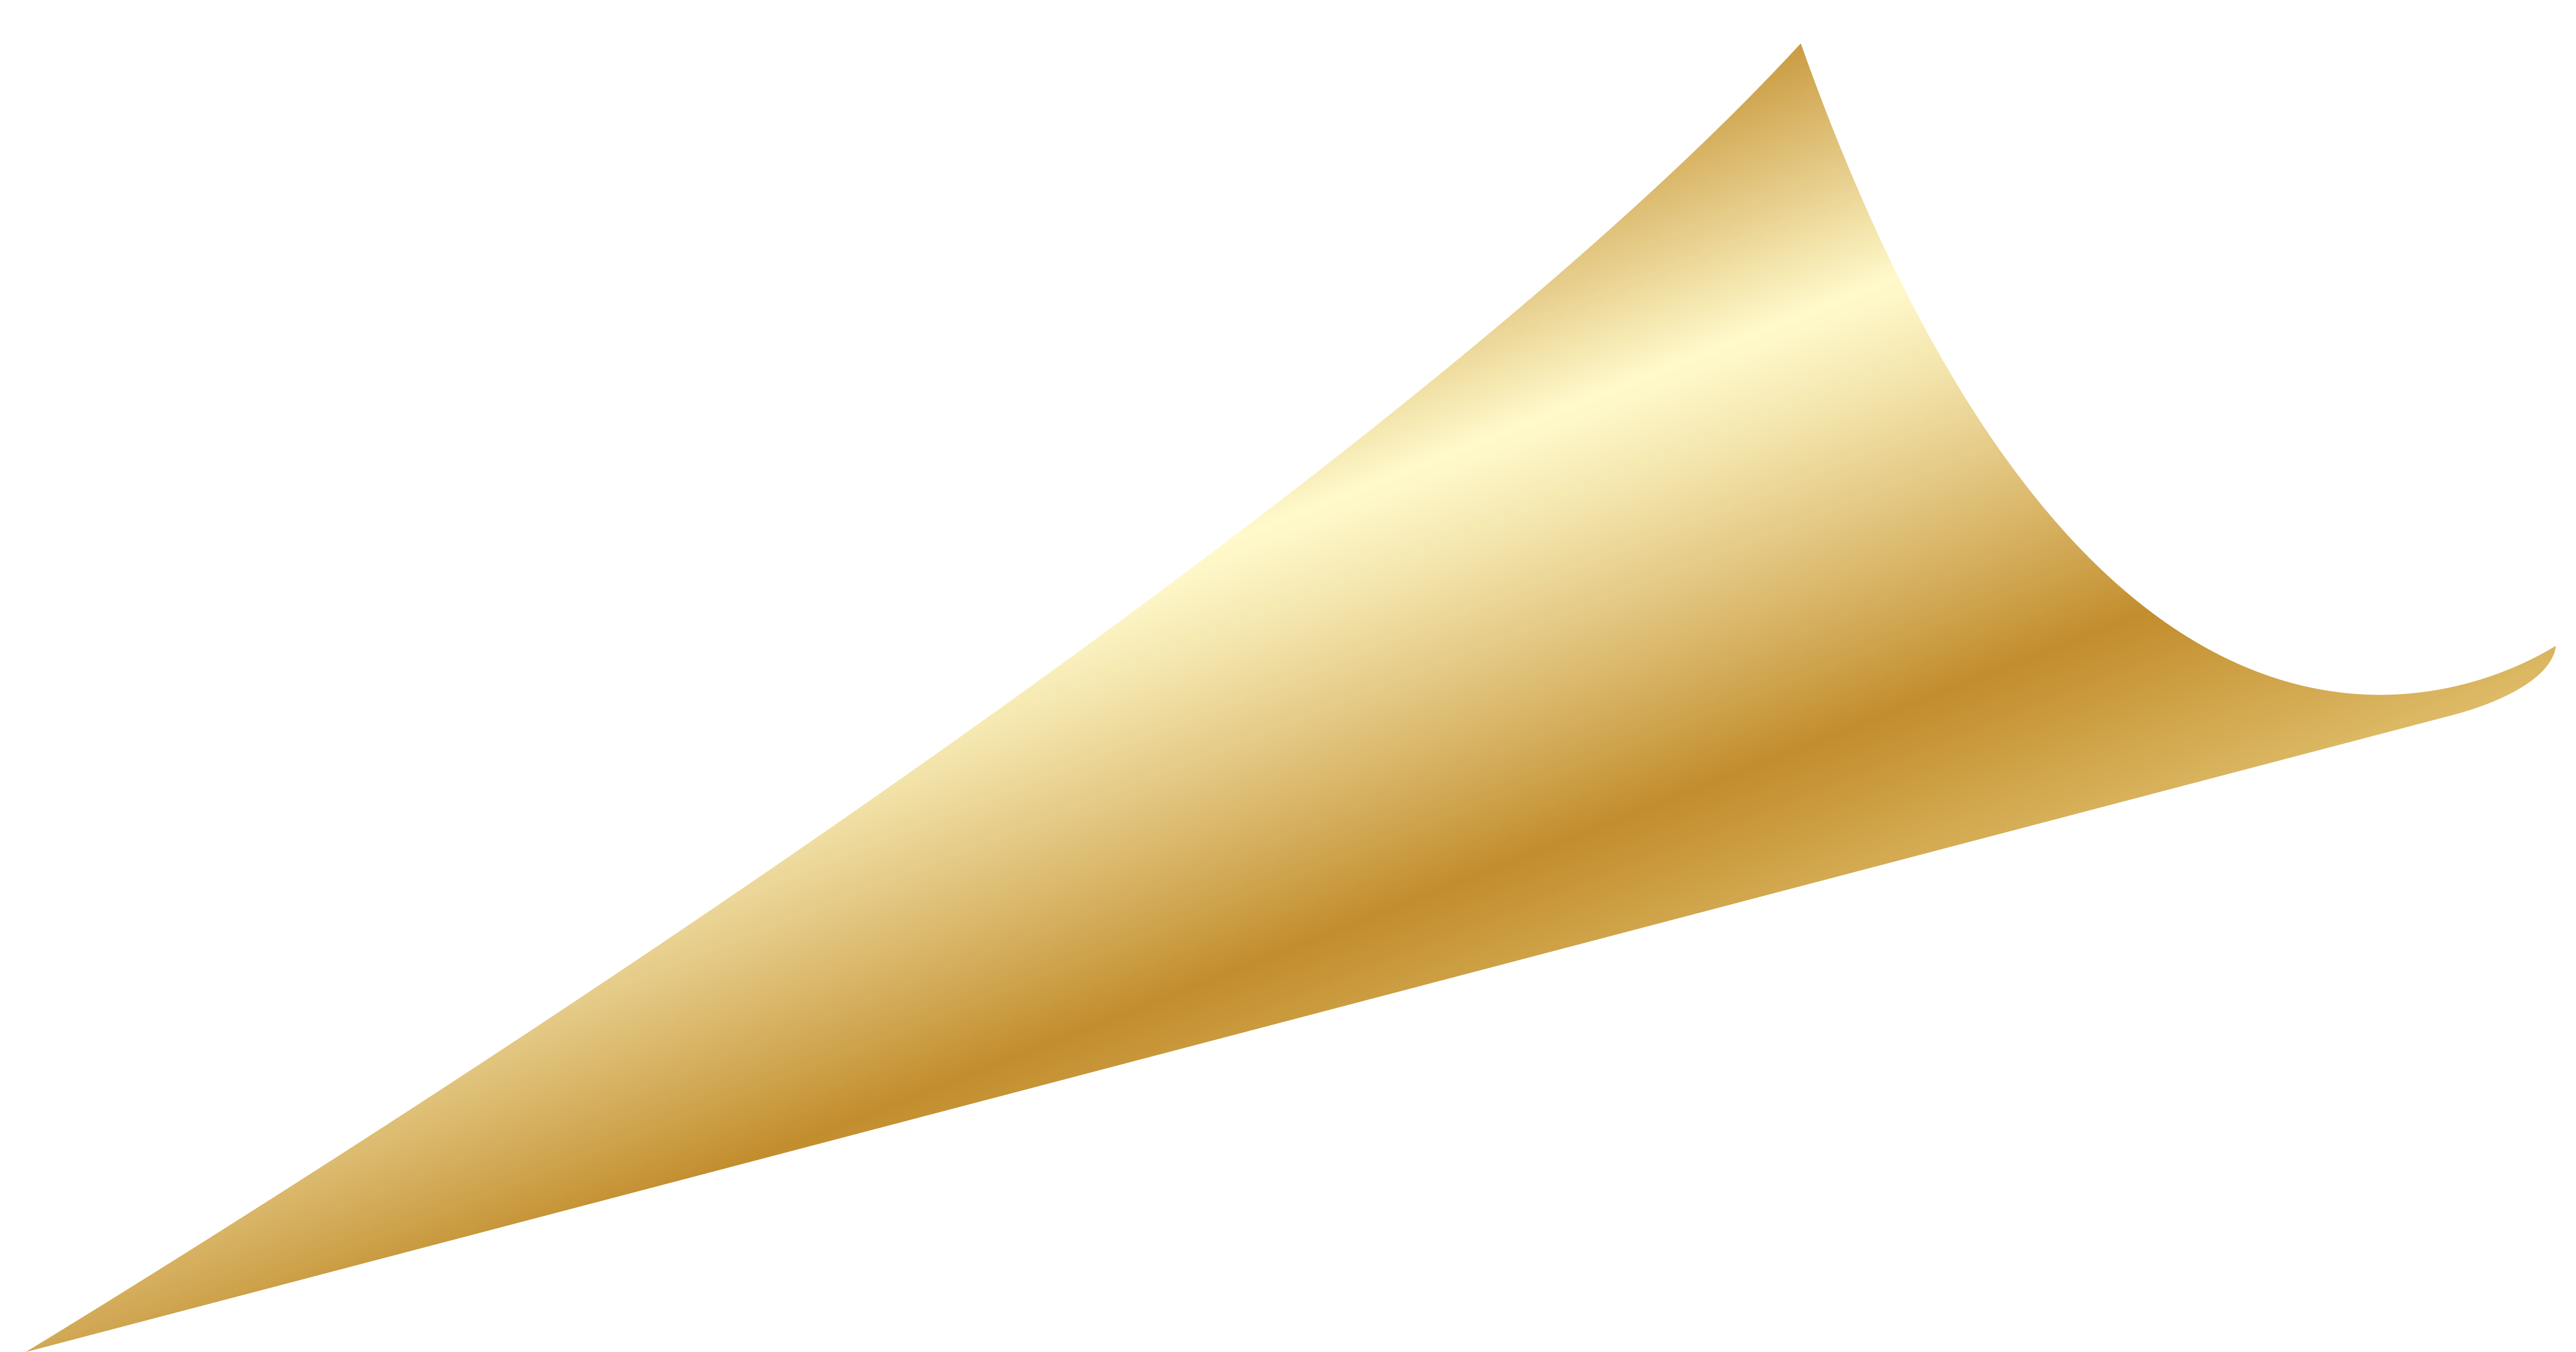 Gold clipart pure gold. Png image purepng free